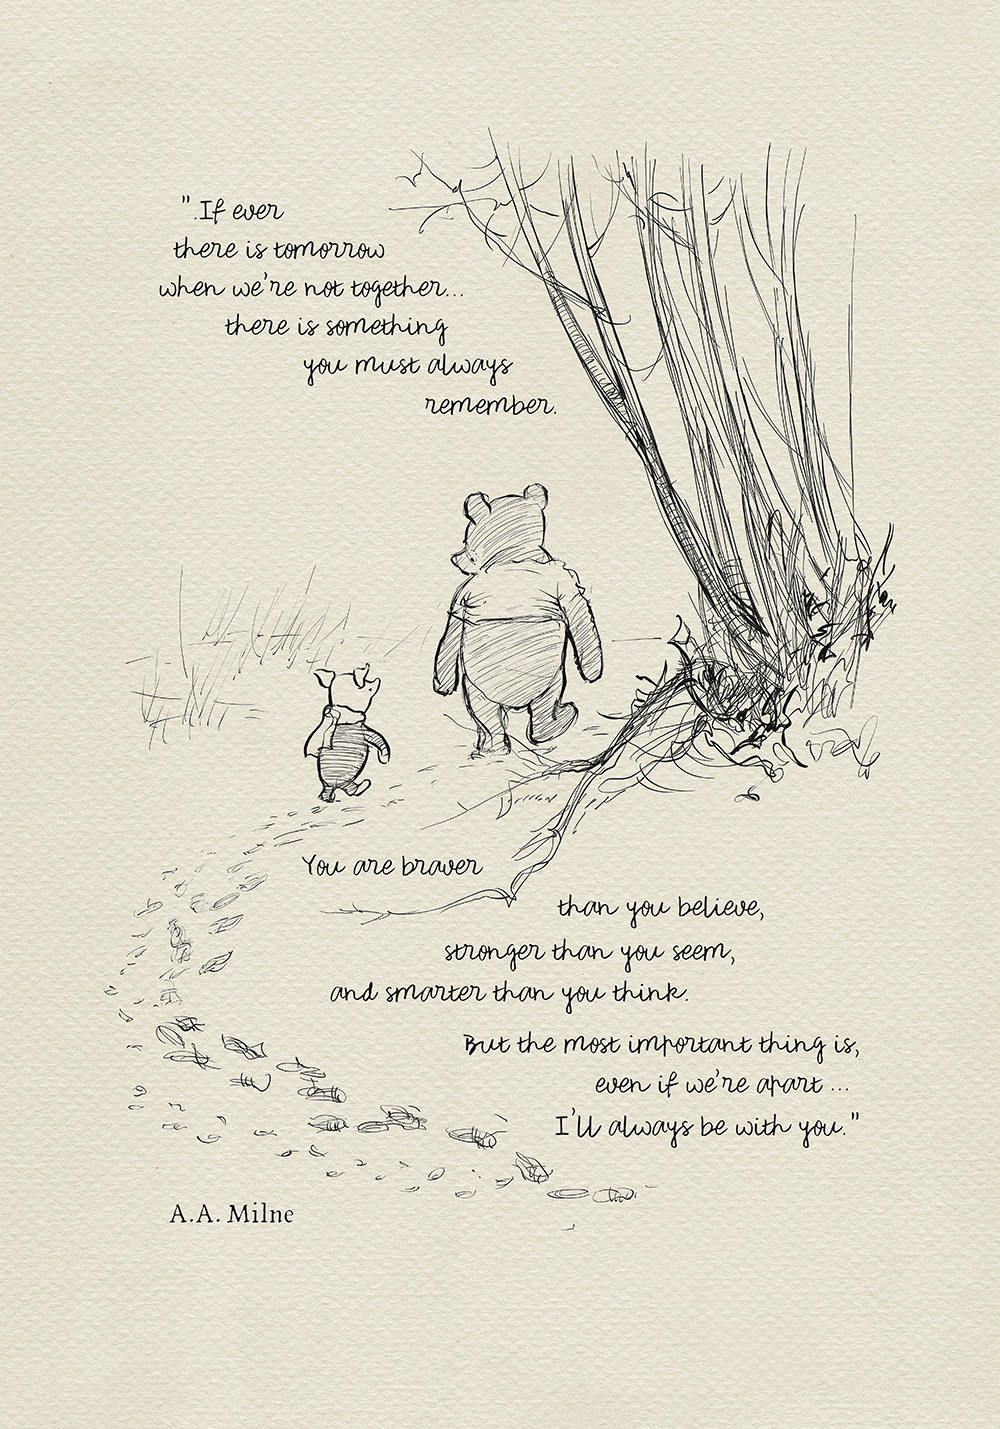 You are braver than you believe Winnie the Pooh Quotes